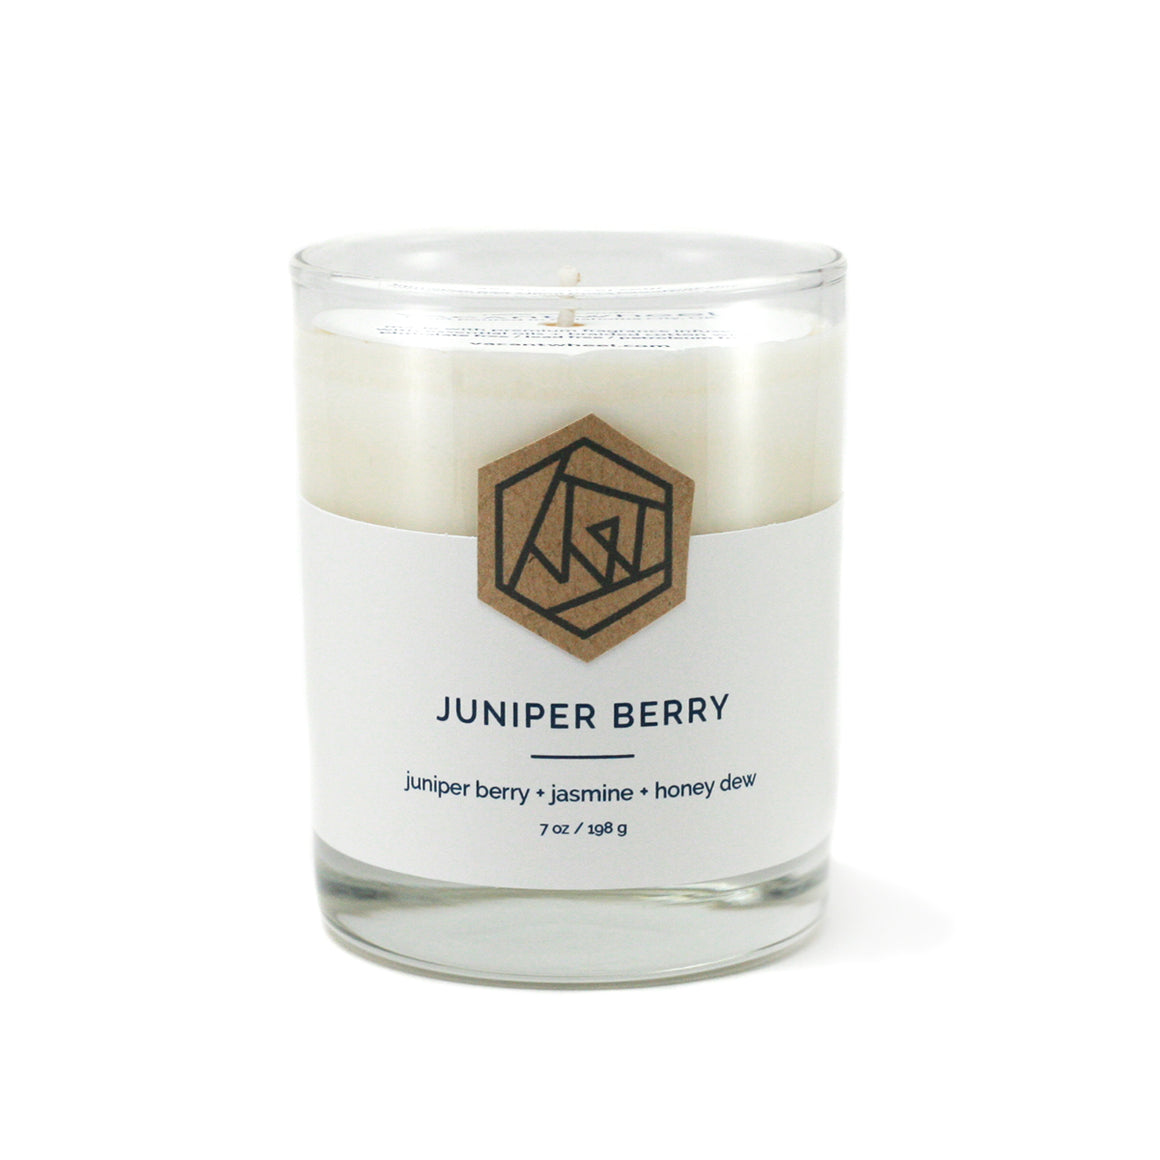 JUNIPER BERRY Cocktail Glass Soy Candle